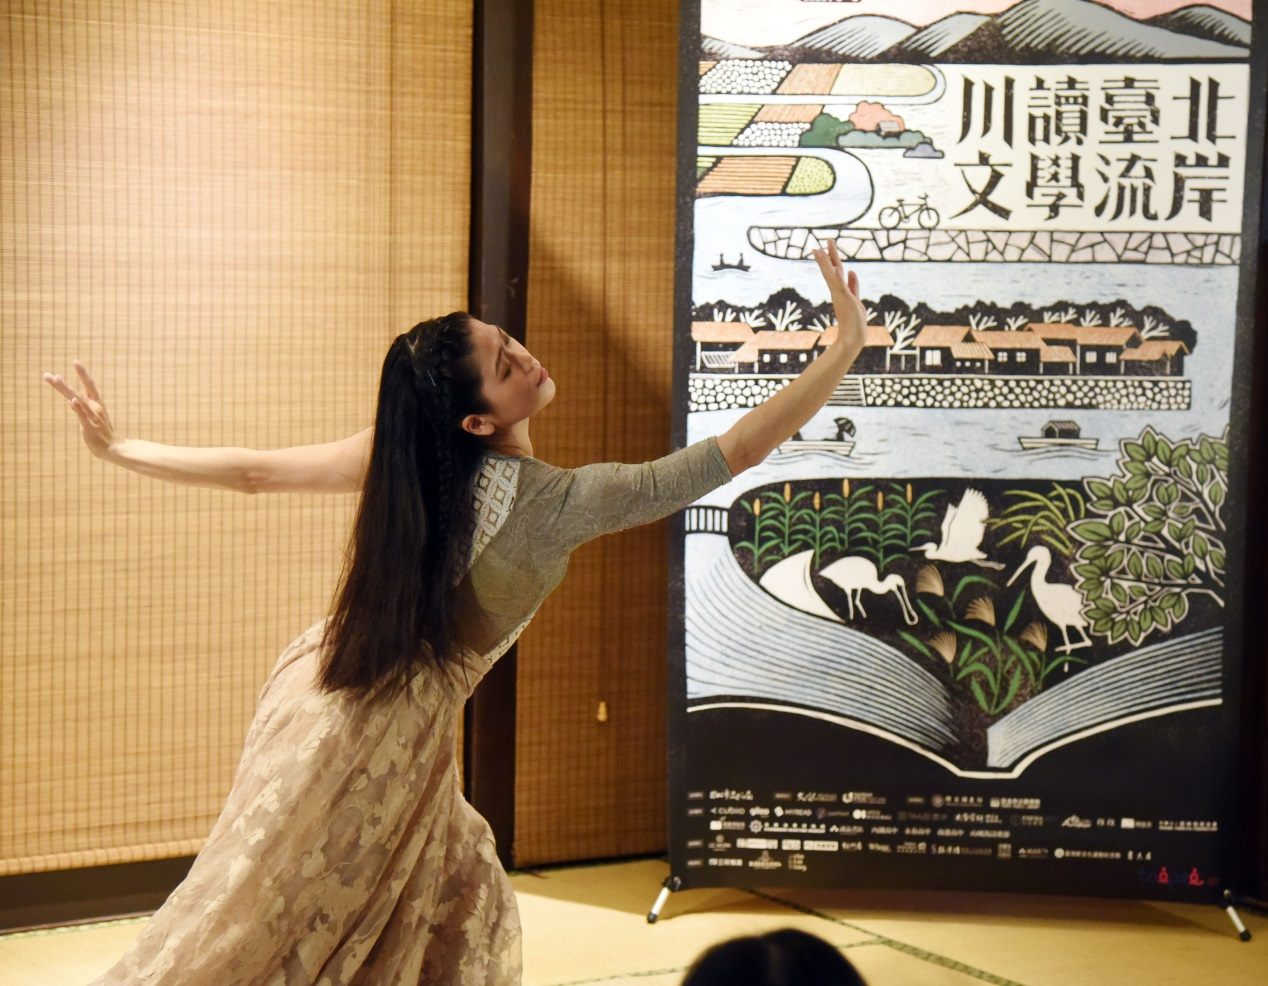 One dancer from the Water Reflection Dance Ensemble performs at the press conference of the Festival on February 20.